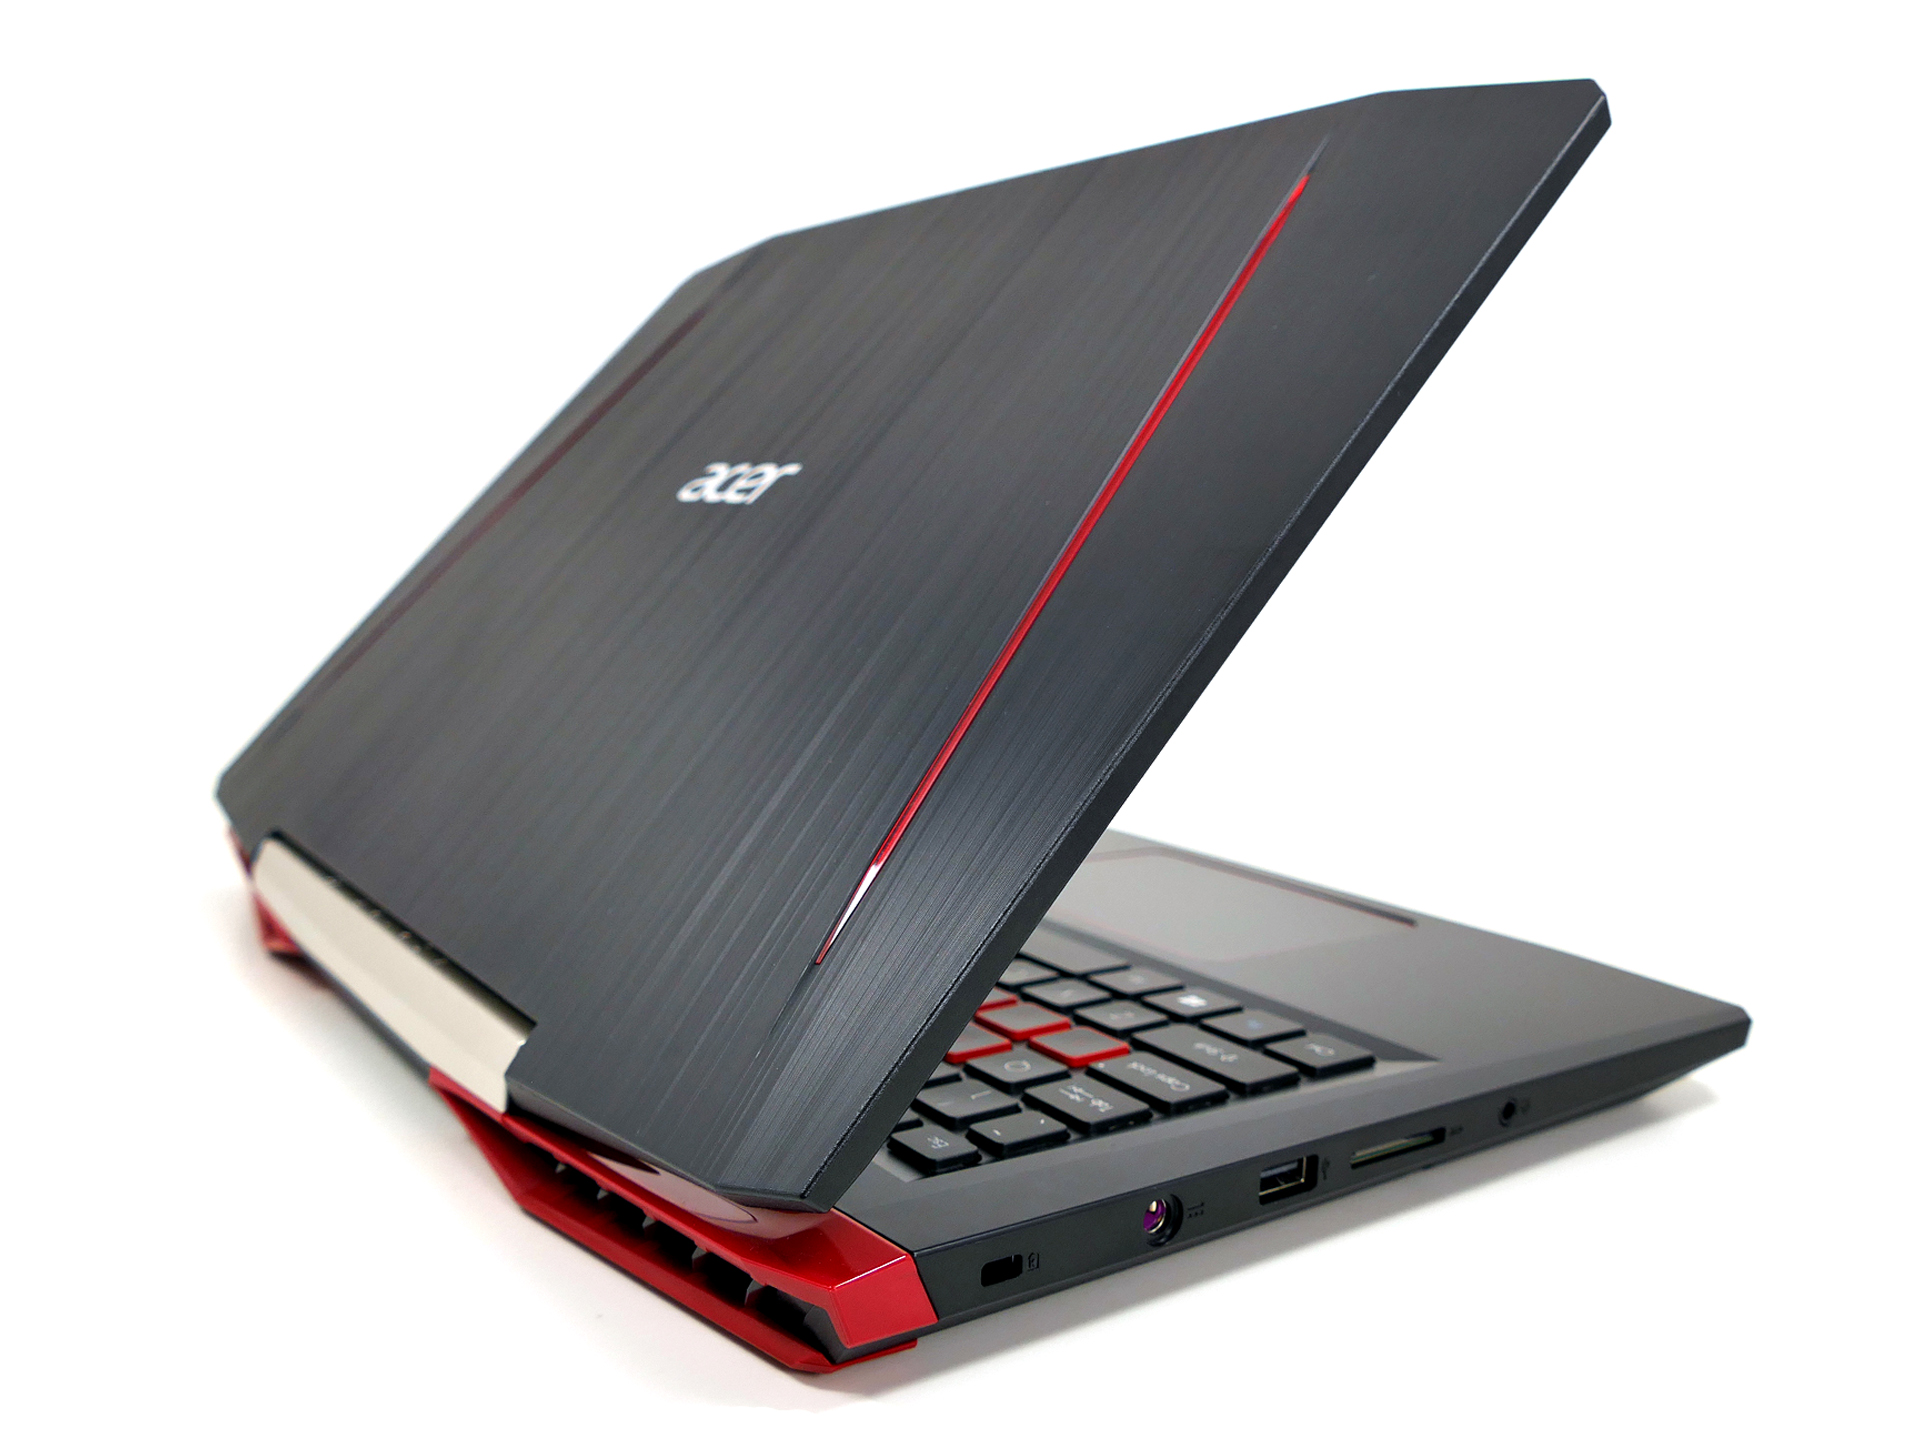 Msi Wallpaper Full Hd Acer Aspire Vx5 591g Vx 15 Notebook Preview